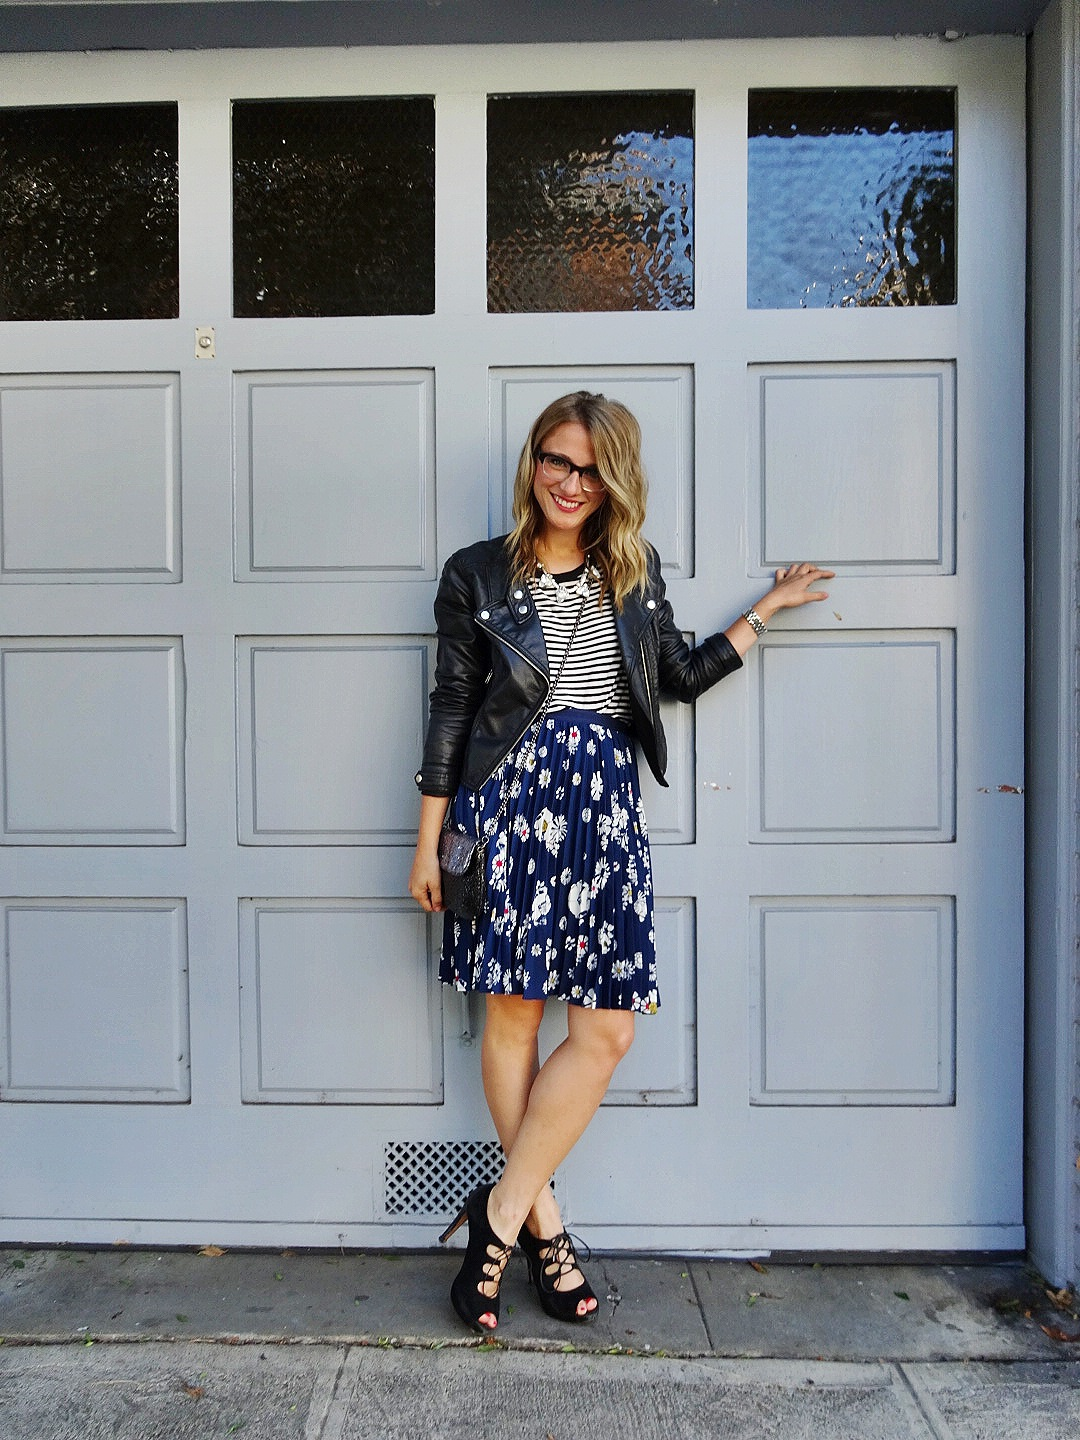 Jacket: F21 | Shirt: Gap | Skirt: Target | Shoes: Target | Necklace: H&M | Purse: J.Crew